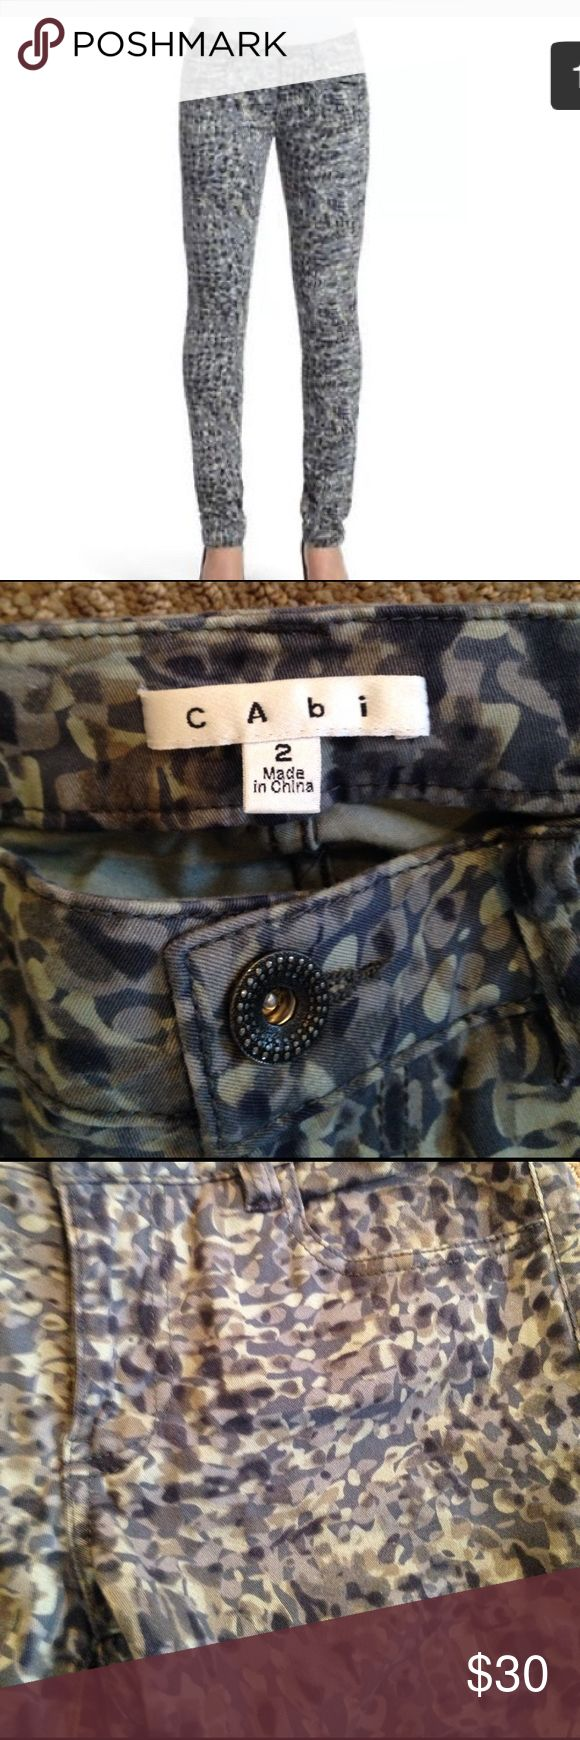 CAbi camouflage skinny jeans CAbi gray modern camouflage jegging skinny jeans. Style #604. Very good condition. CAbi Pants